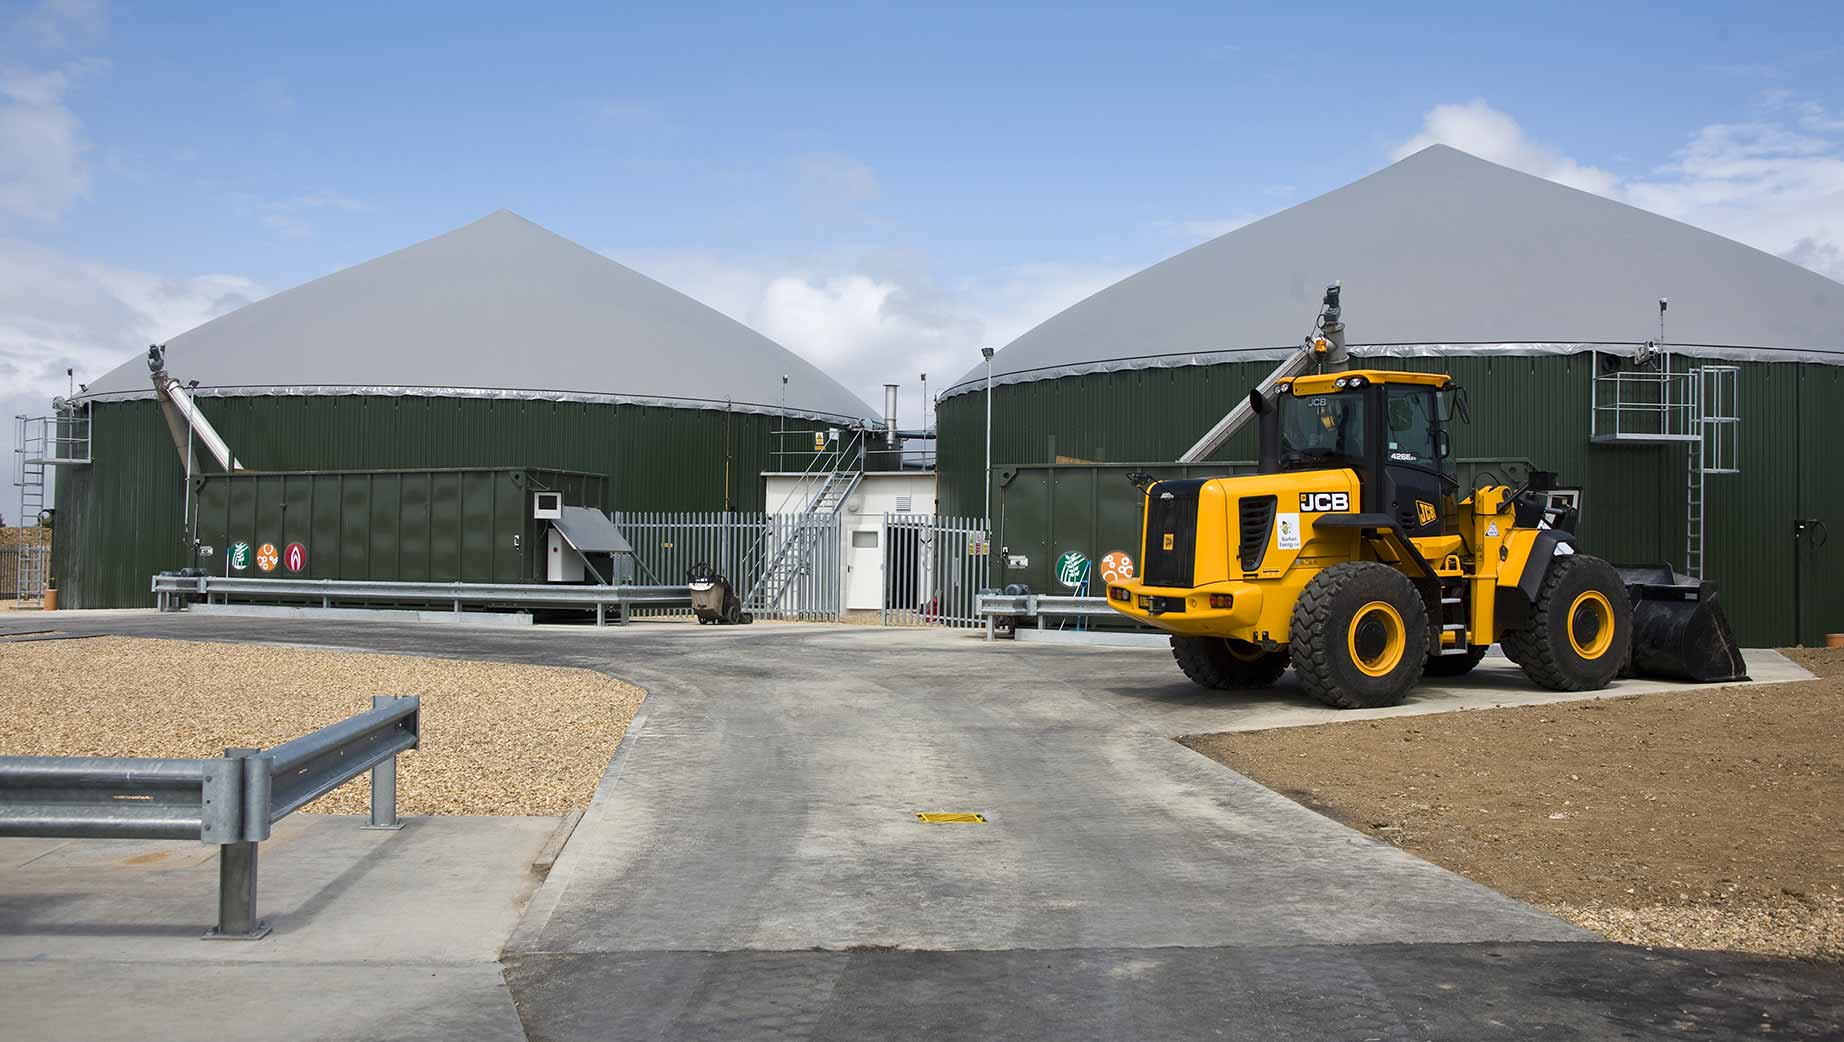 Photograph of the Barfoots Anaerobic Digester